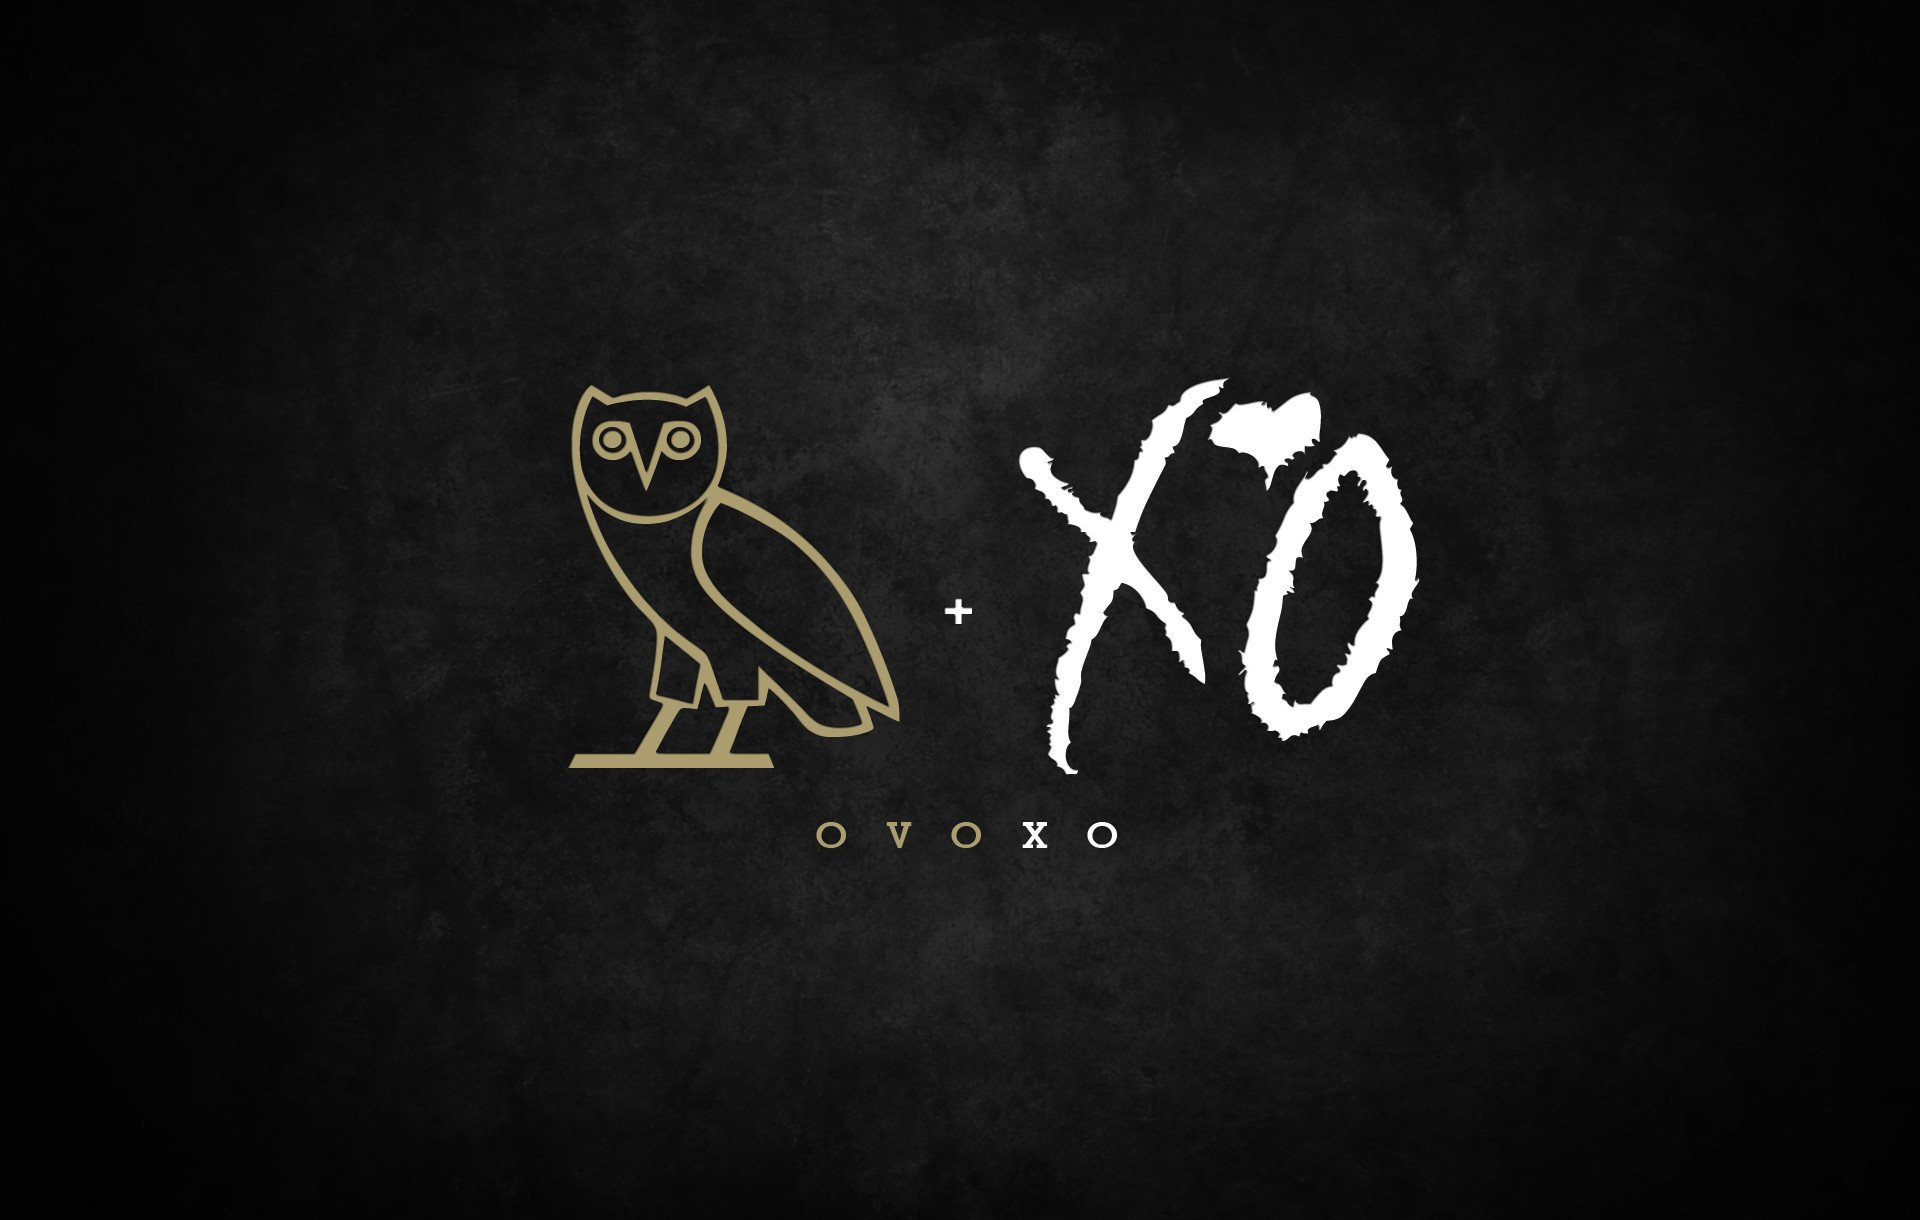 OVO OVOXO Wallpapers   Page 16 Kanye West Forum 1920x1220